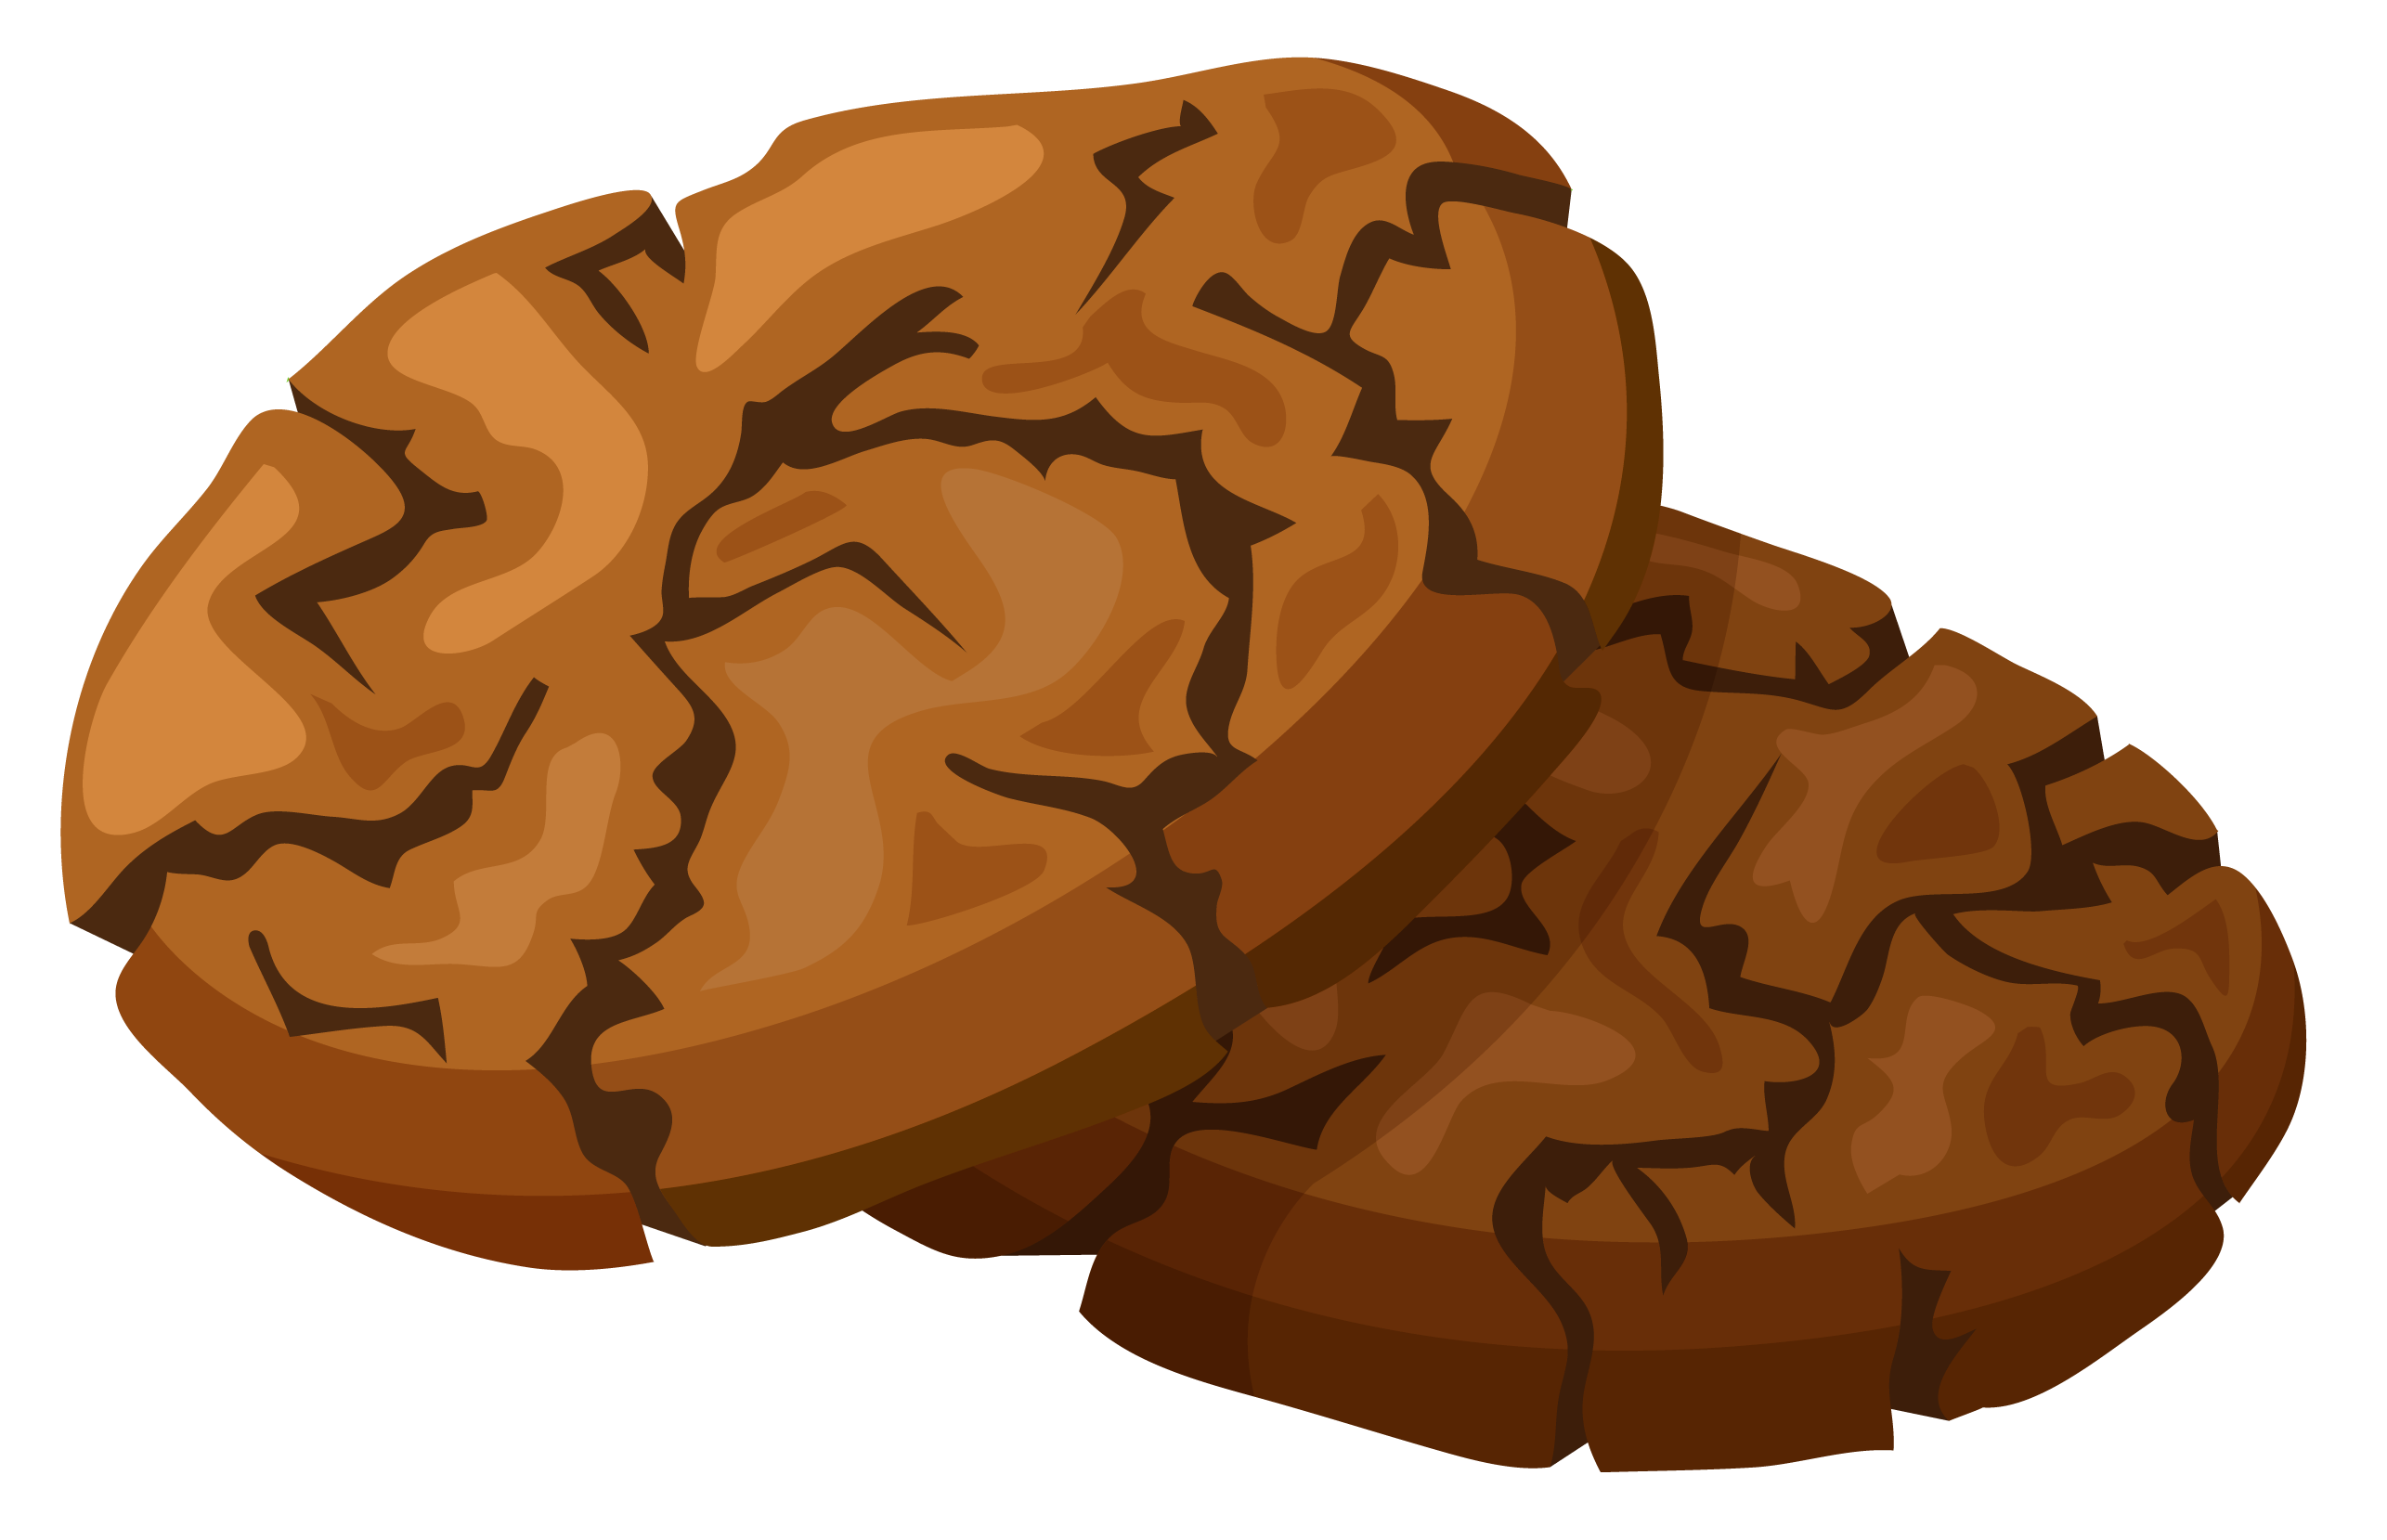 Cookie clipart eaten. Chocolate png picture gallery